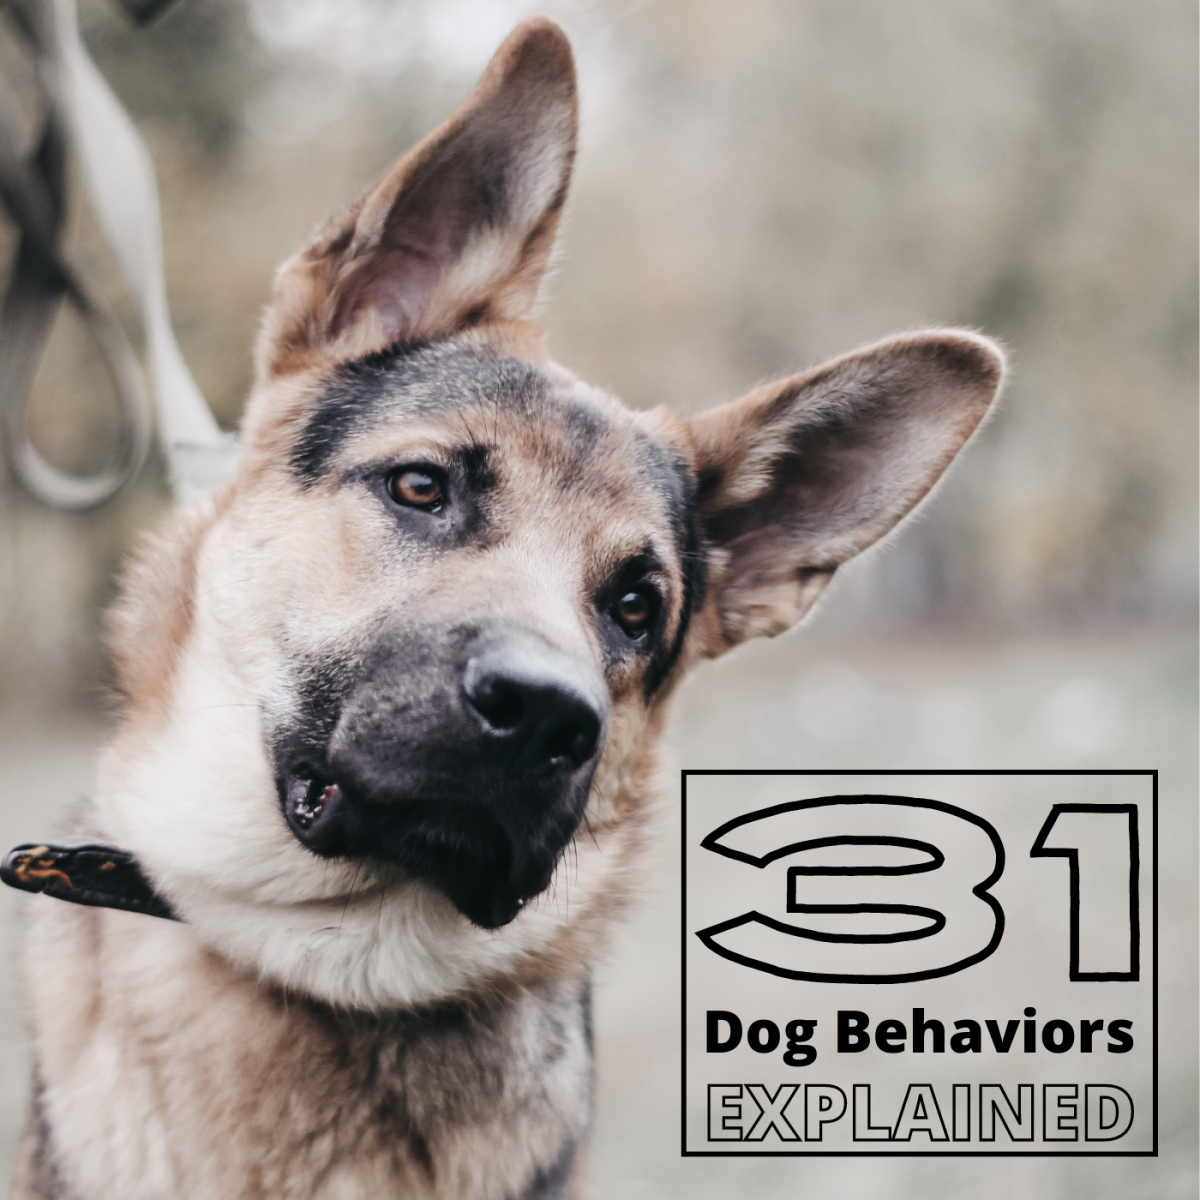 31 Dog Behaviors and What They Mean